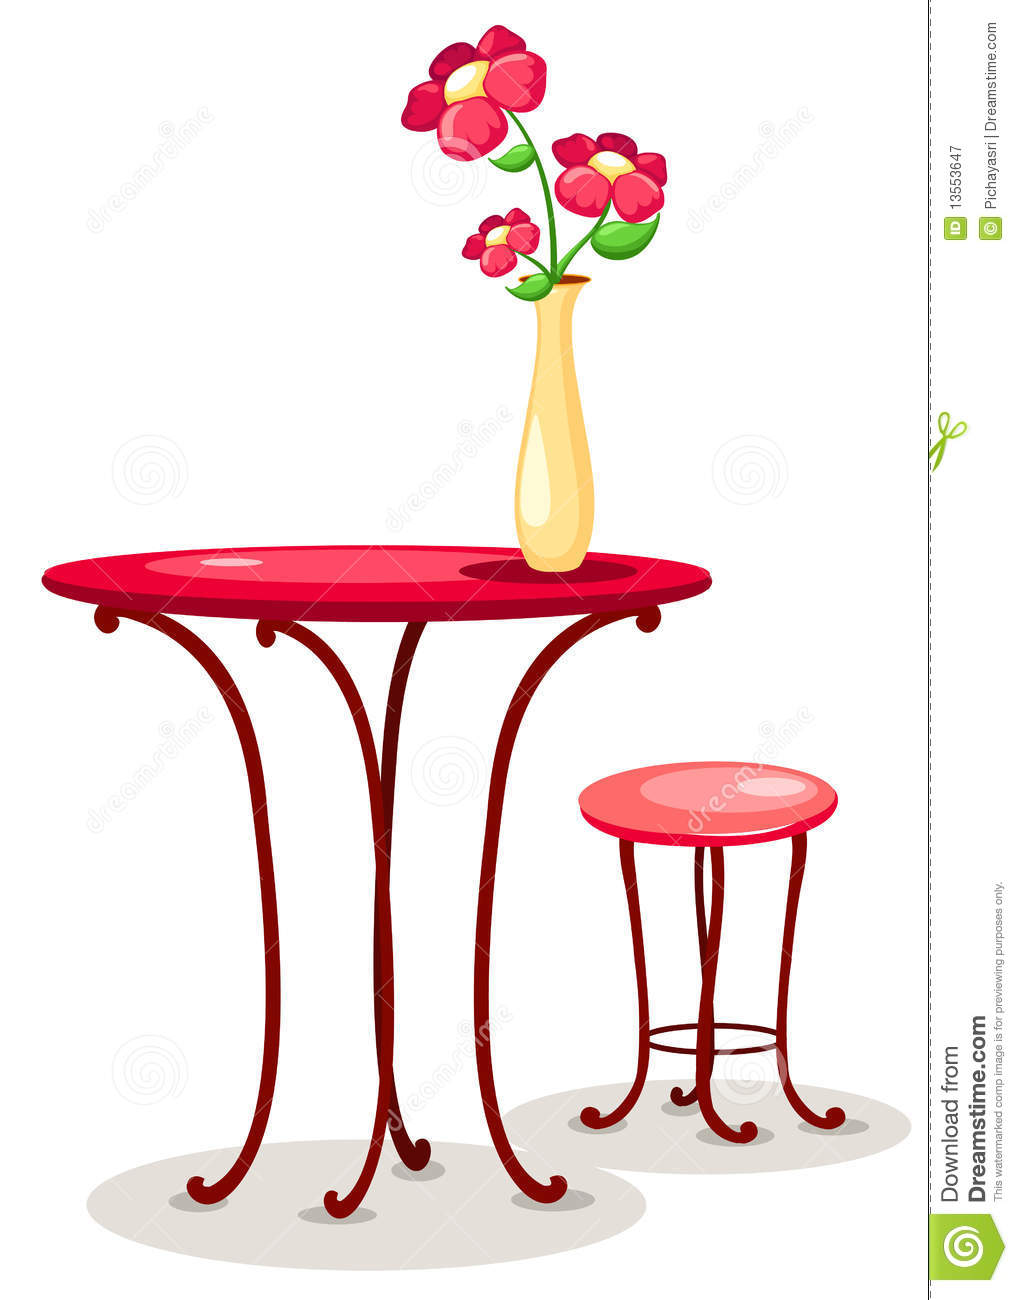 Black Bear Reclines Sofa Manitoba Rubbish Dump besides Small Folding Table Very  fortable furthermore Pallet Outdoor Furniture furthermore Cutout People Cliparts likewise Royalty Free Stock Photography Vase Flowers Table Chair Image13553647. on picnic time chair with table